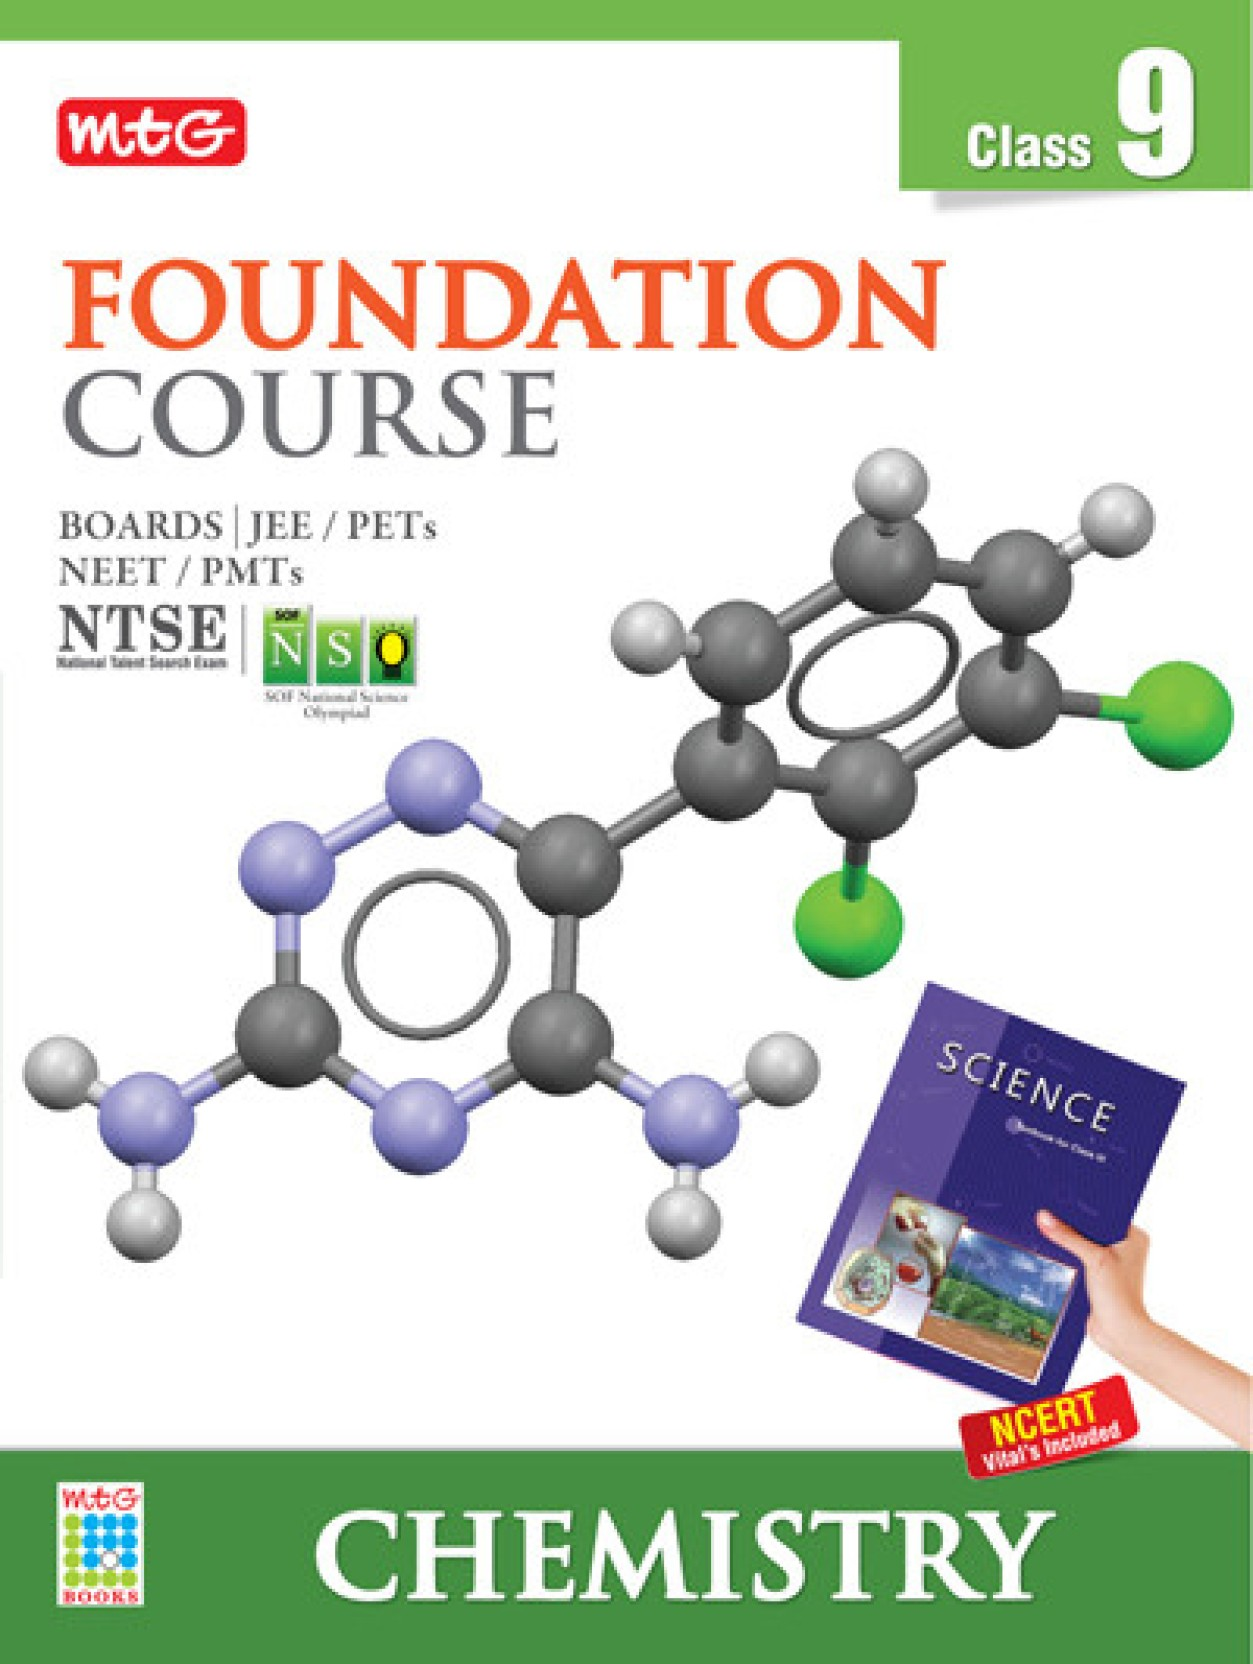 MTG Foundation Course for Class 9 - Chemistry